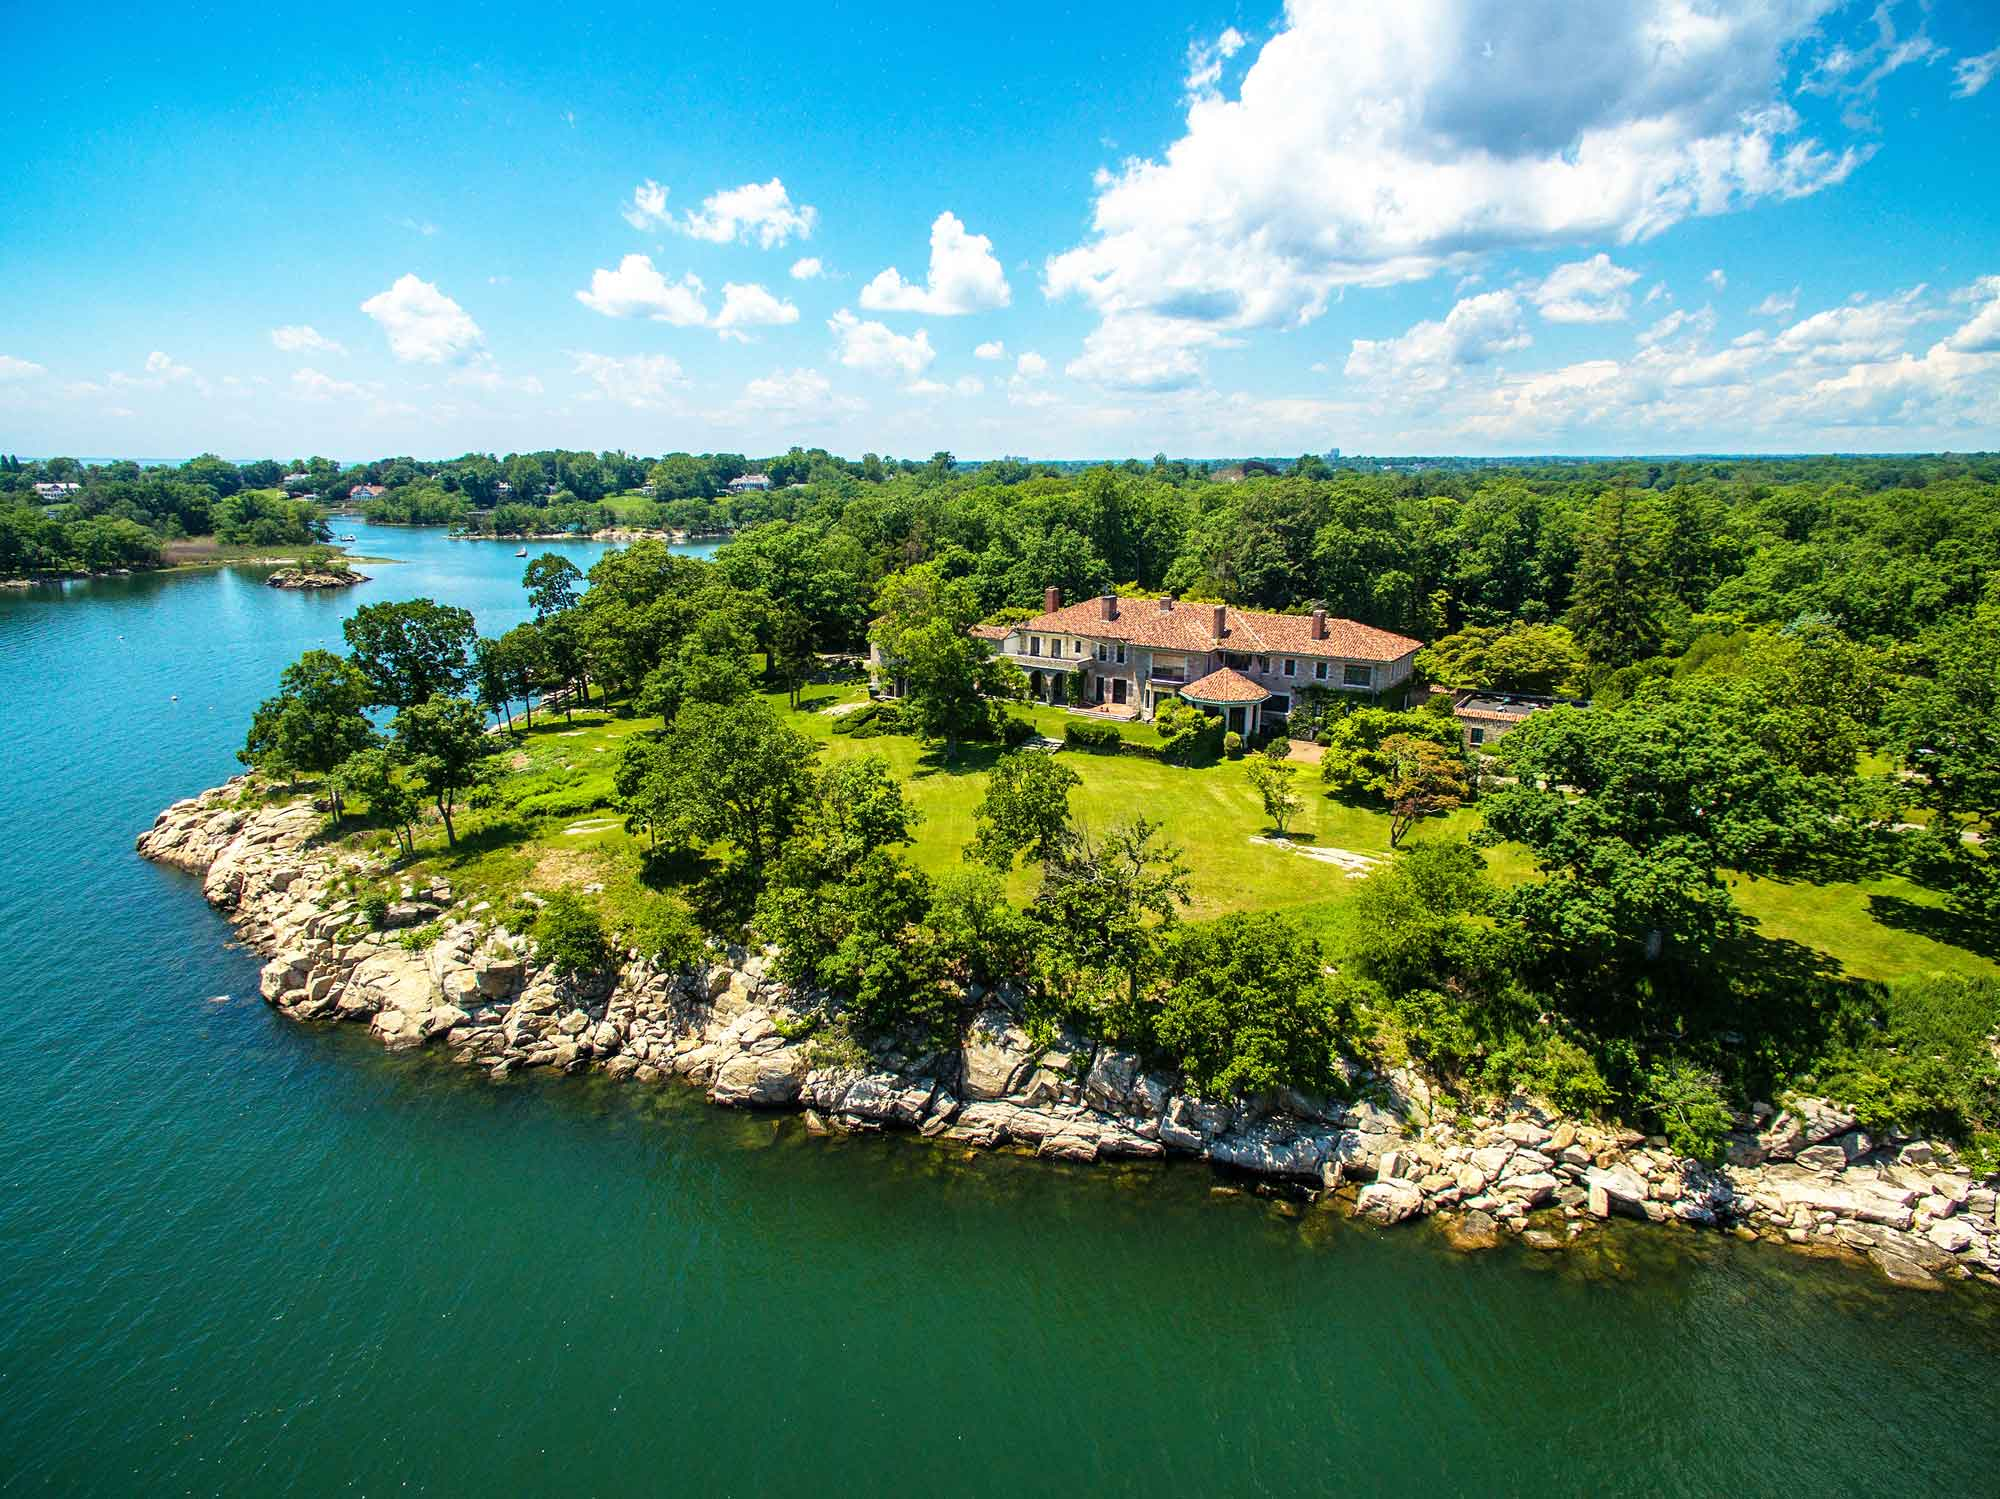 Great Island in Connecticut, offered for sale at $175 million